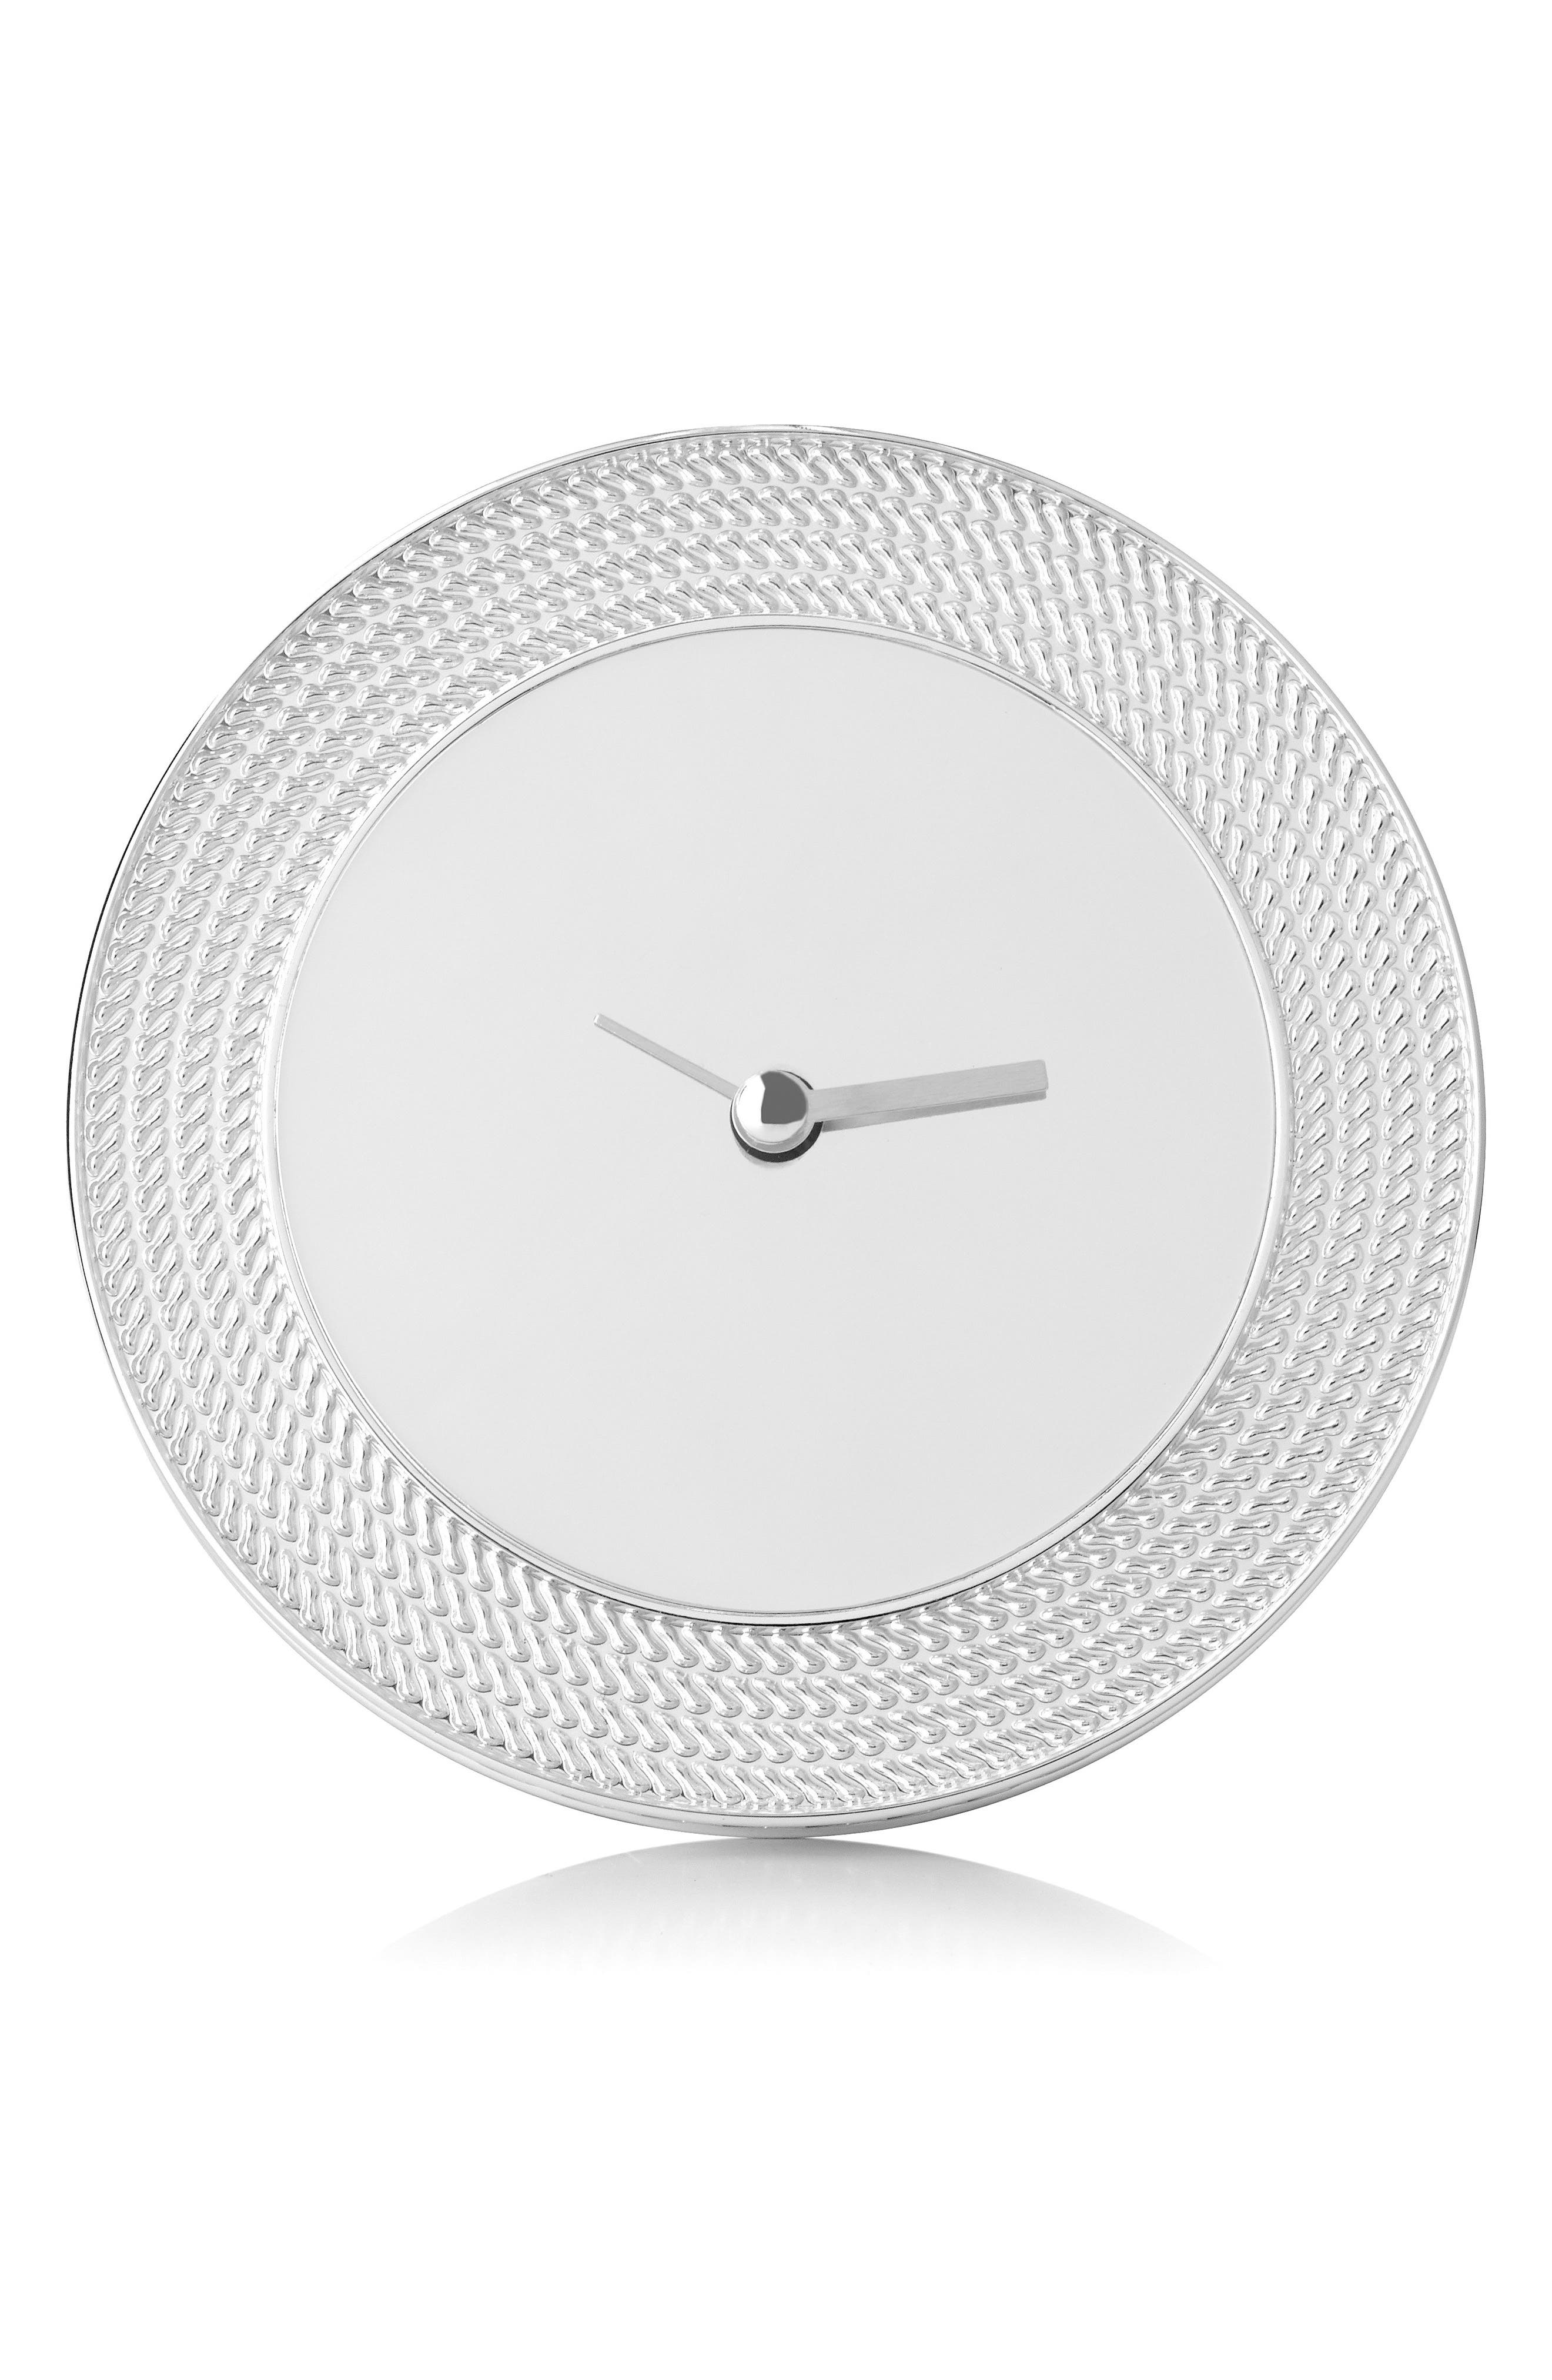 x Wedgwood With Love Nouveau Clock,                         Main,                         color, Metallic Silver